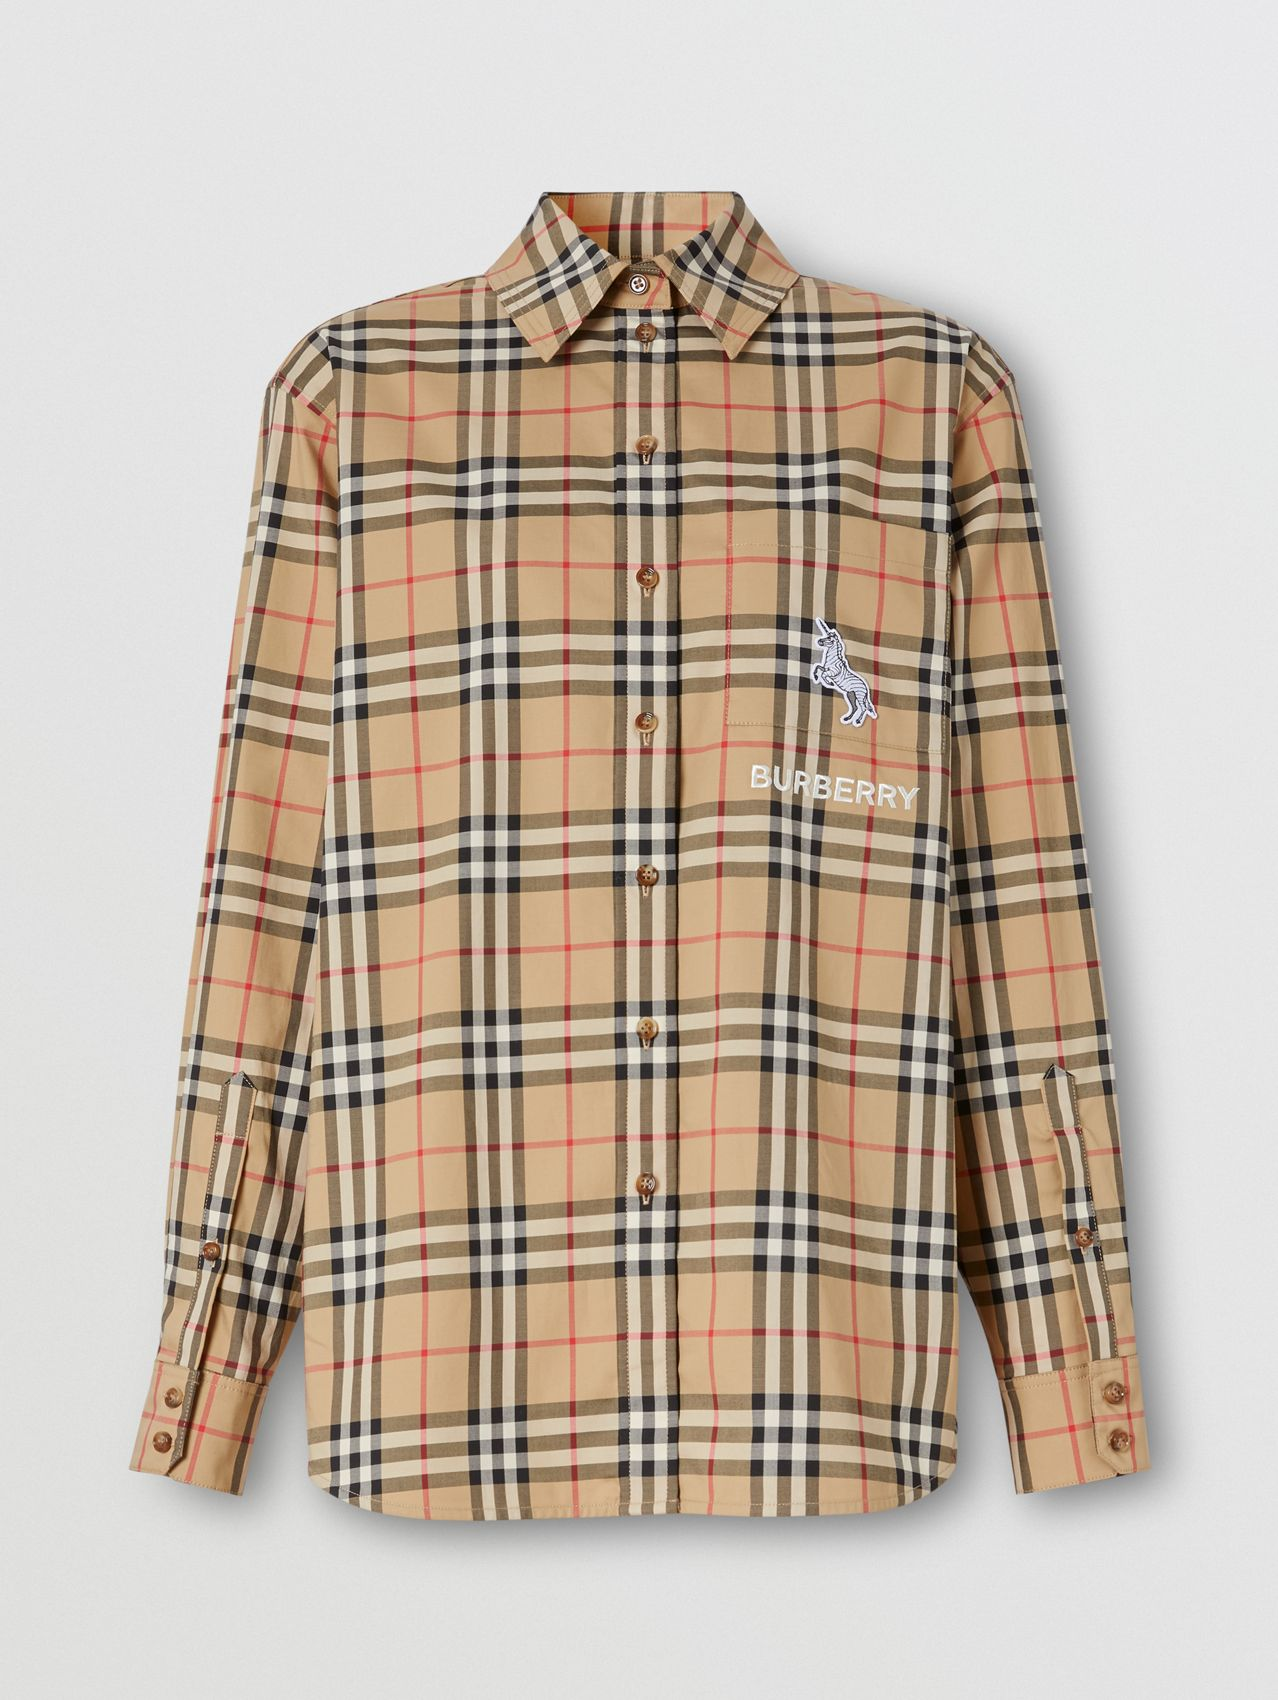 Zebra Appliqué Vintage Check Cotton Oversized Shirt